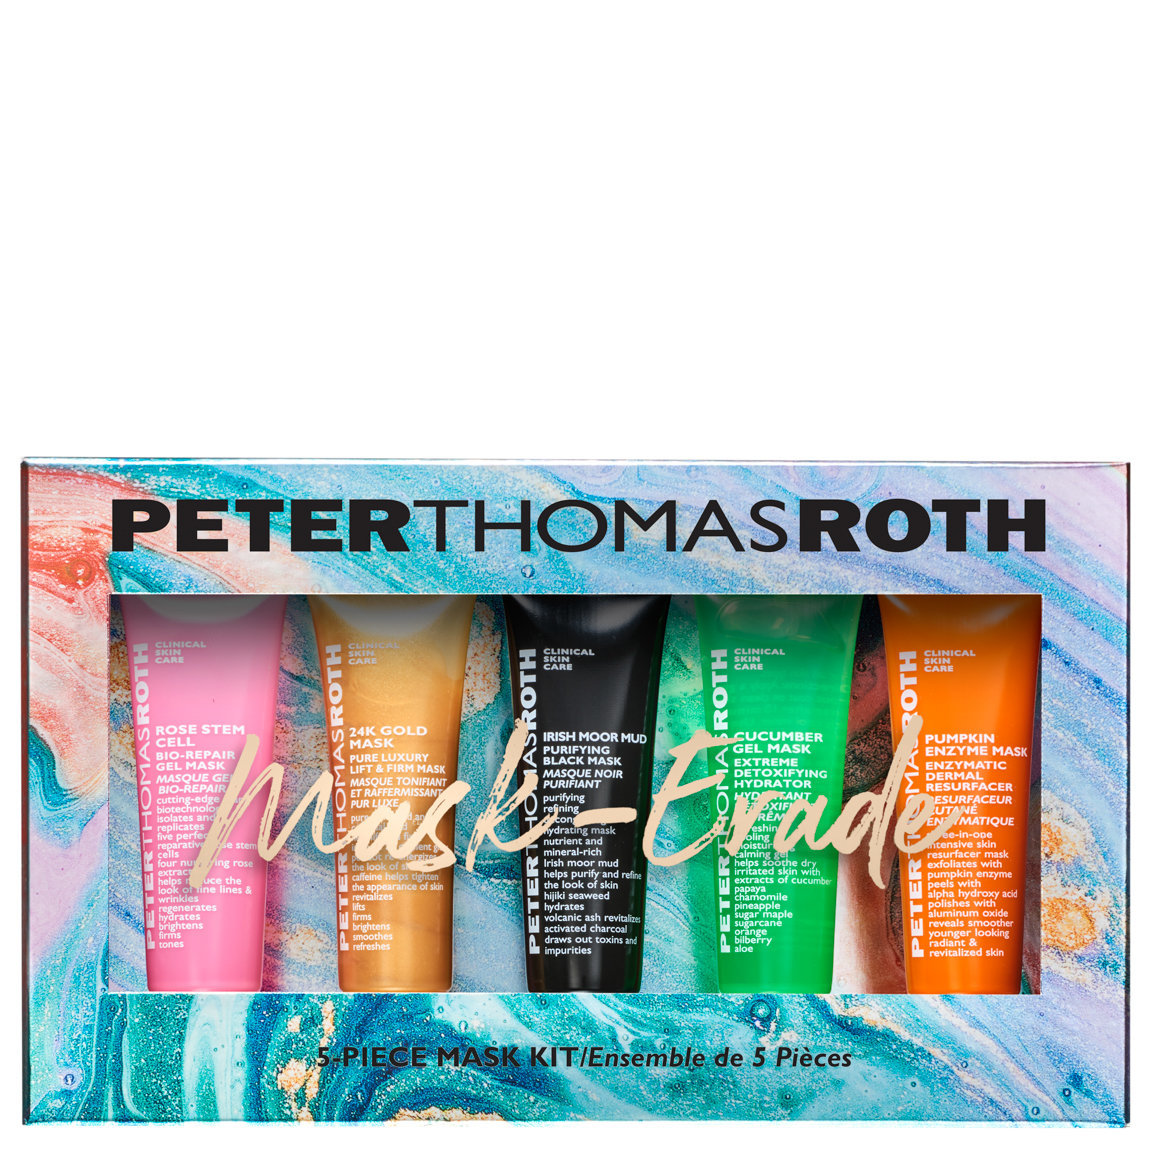 Peter Thomas Roth Mask-Erade product swatch.